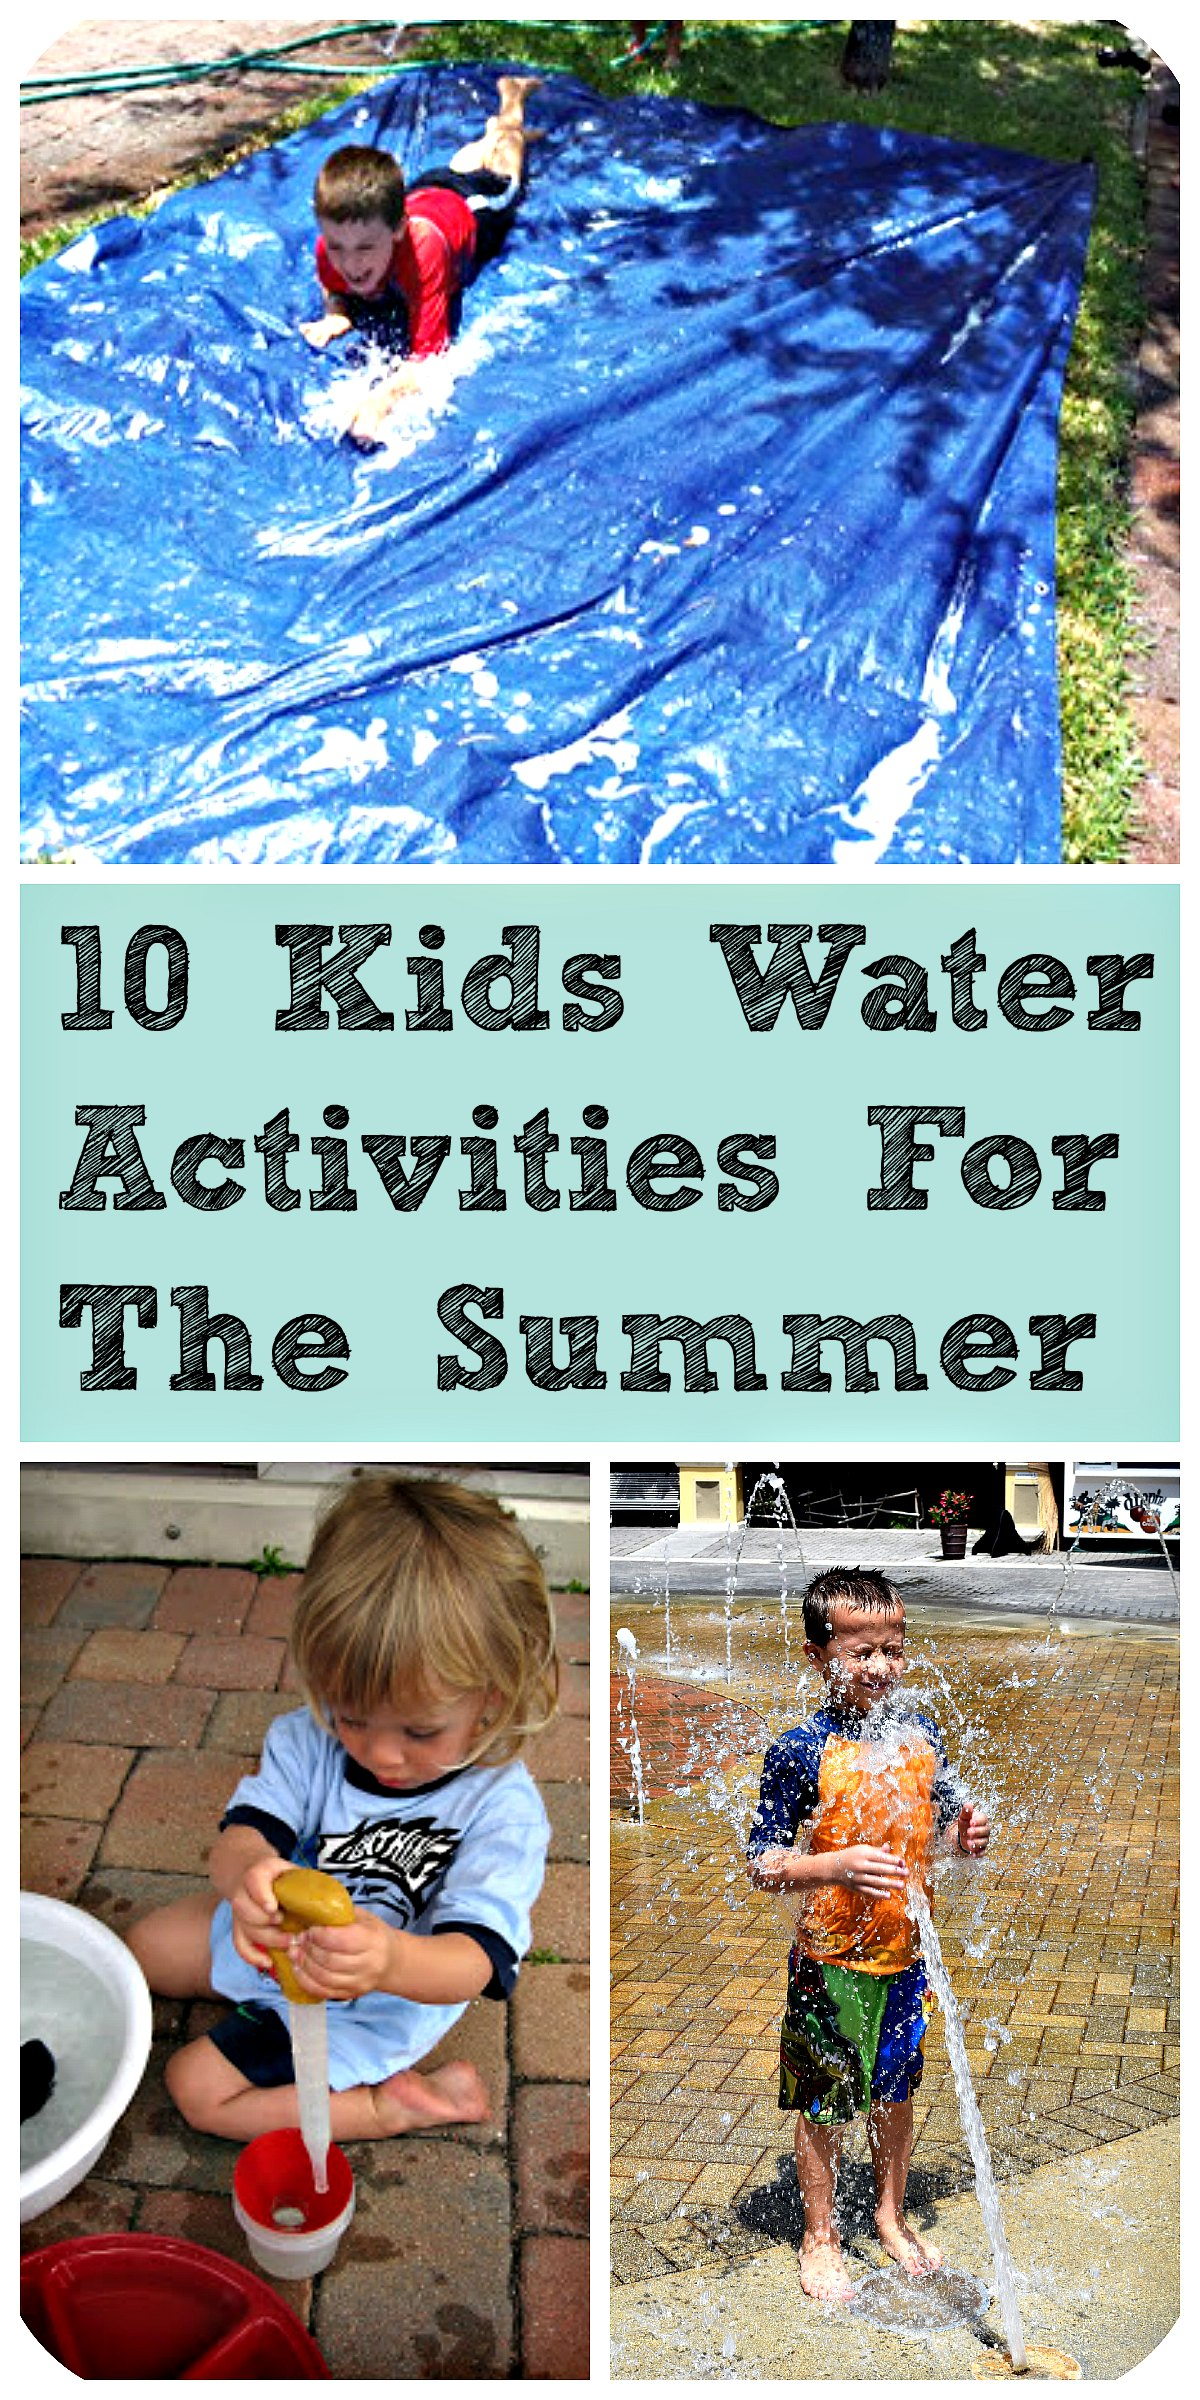 10 Summer Makeup Must Haves: 10 Kids Water Activities For The Summer